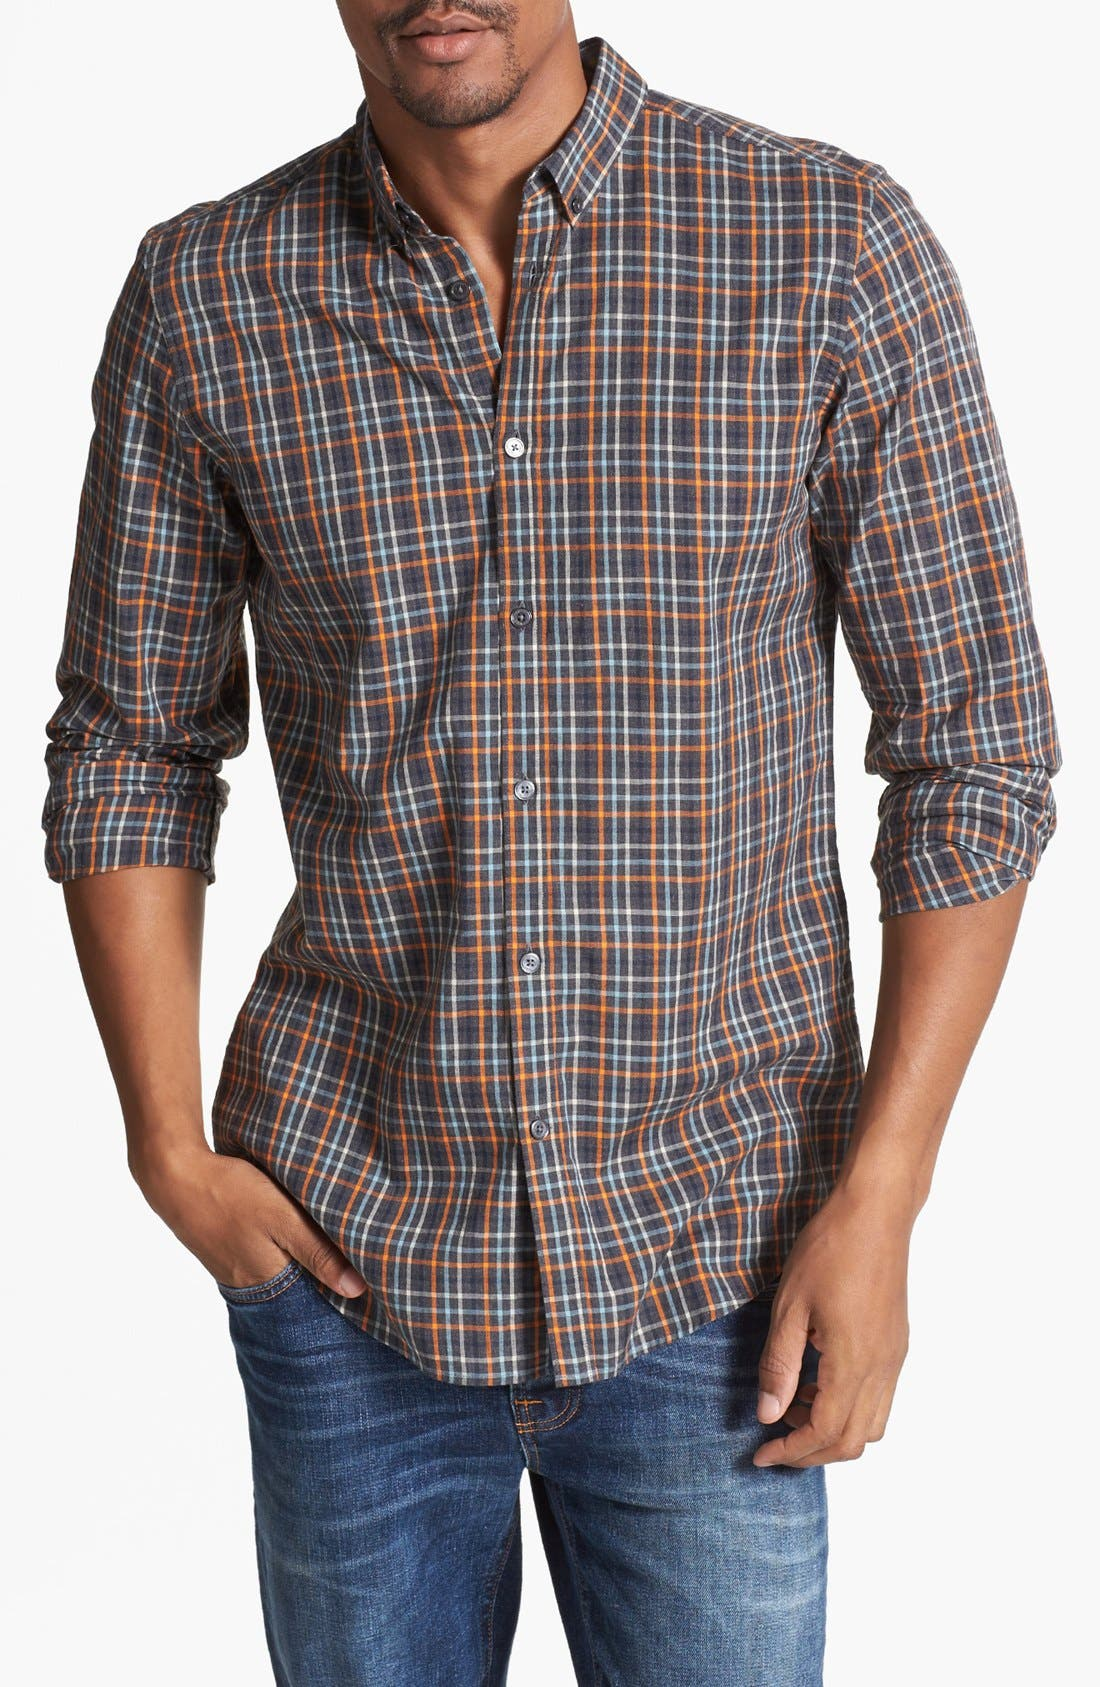 Main Image - Ben Sherman Slim Fit Plaid Shirt